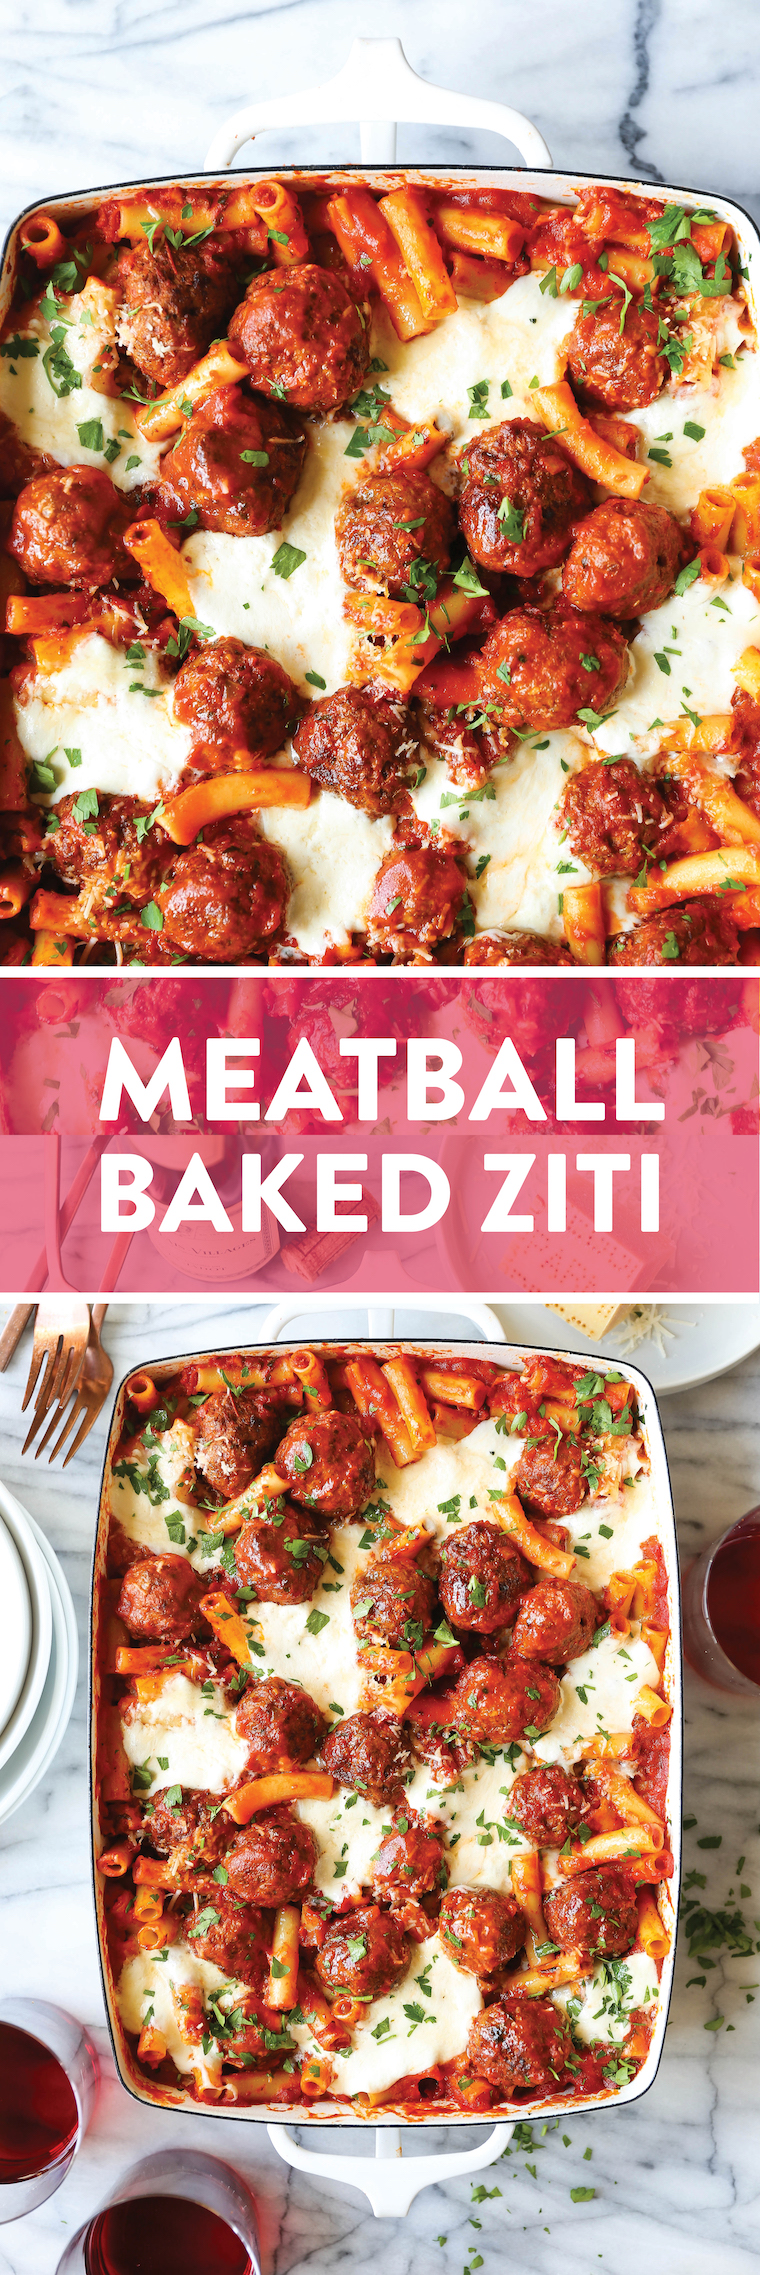 Meatball Baked Ziti - Cheesy baked ziti with the easiest homemade meatballs. Quick to prepare and so so good. Comfort food at its best here!